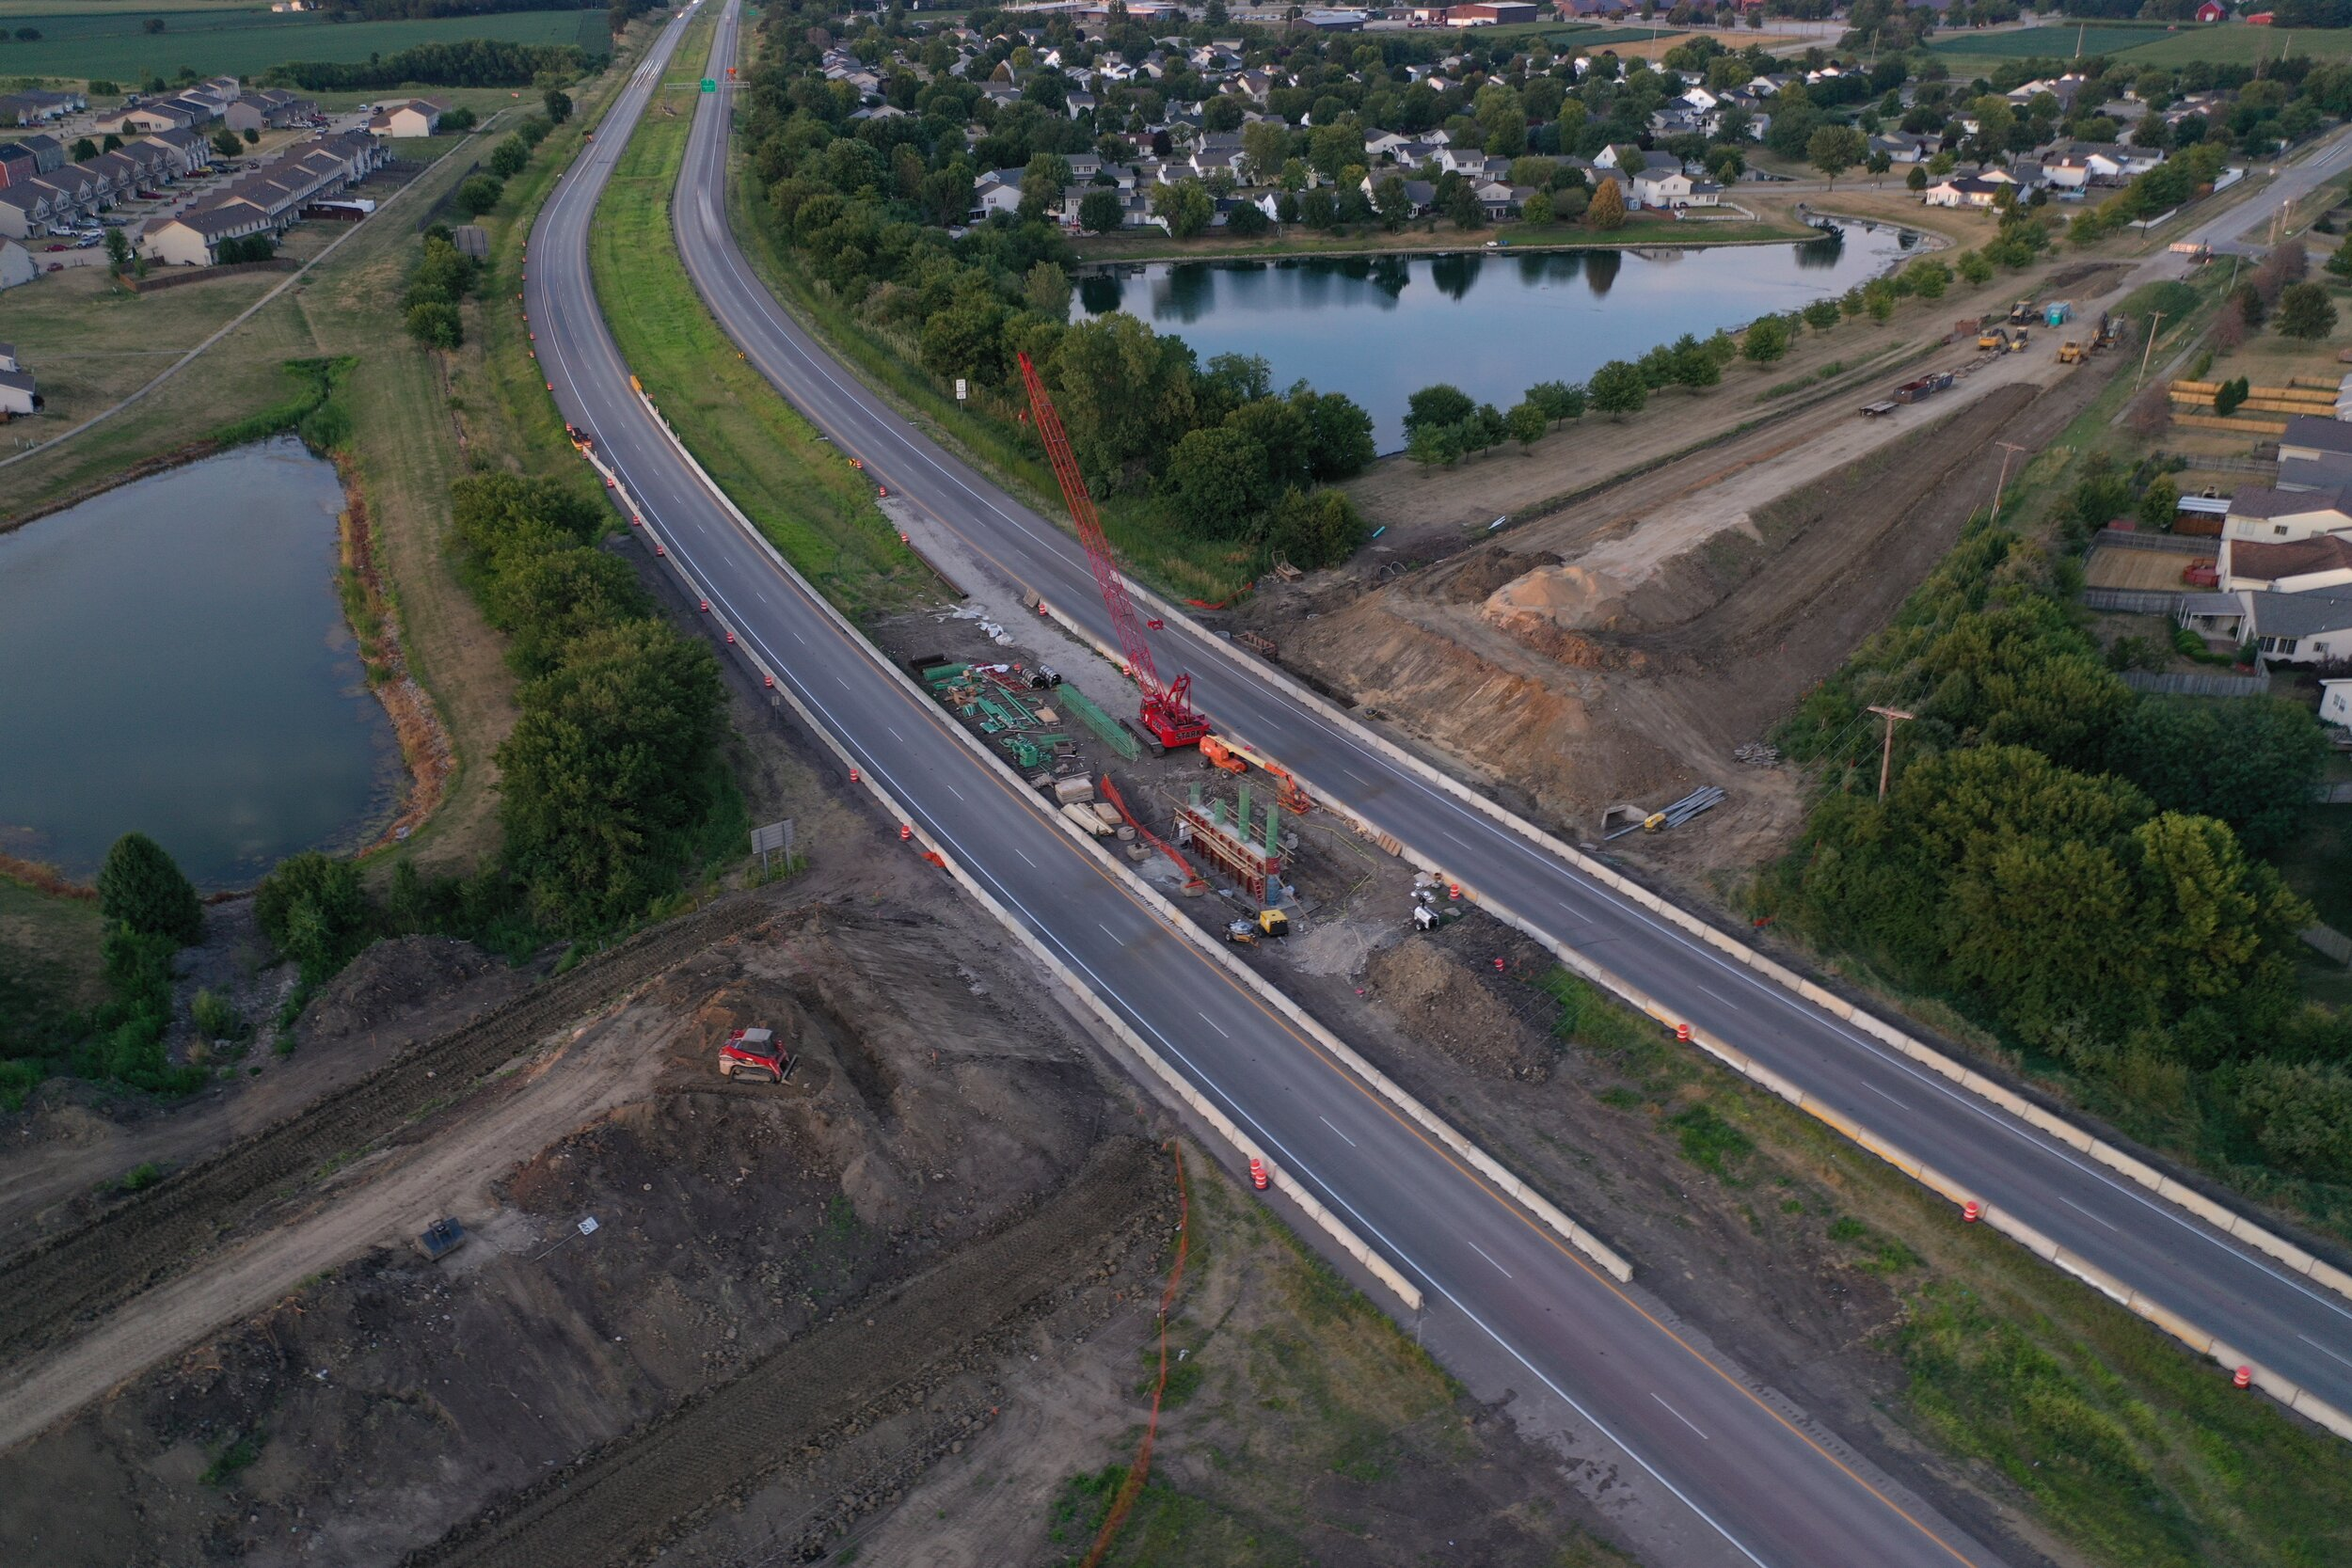 Aerial image of bridge construction project